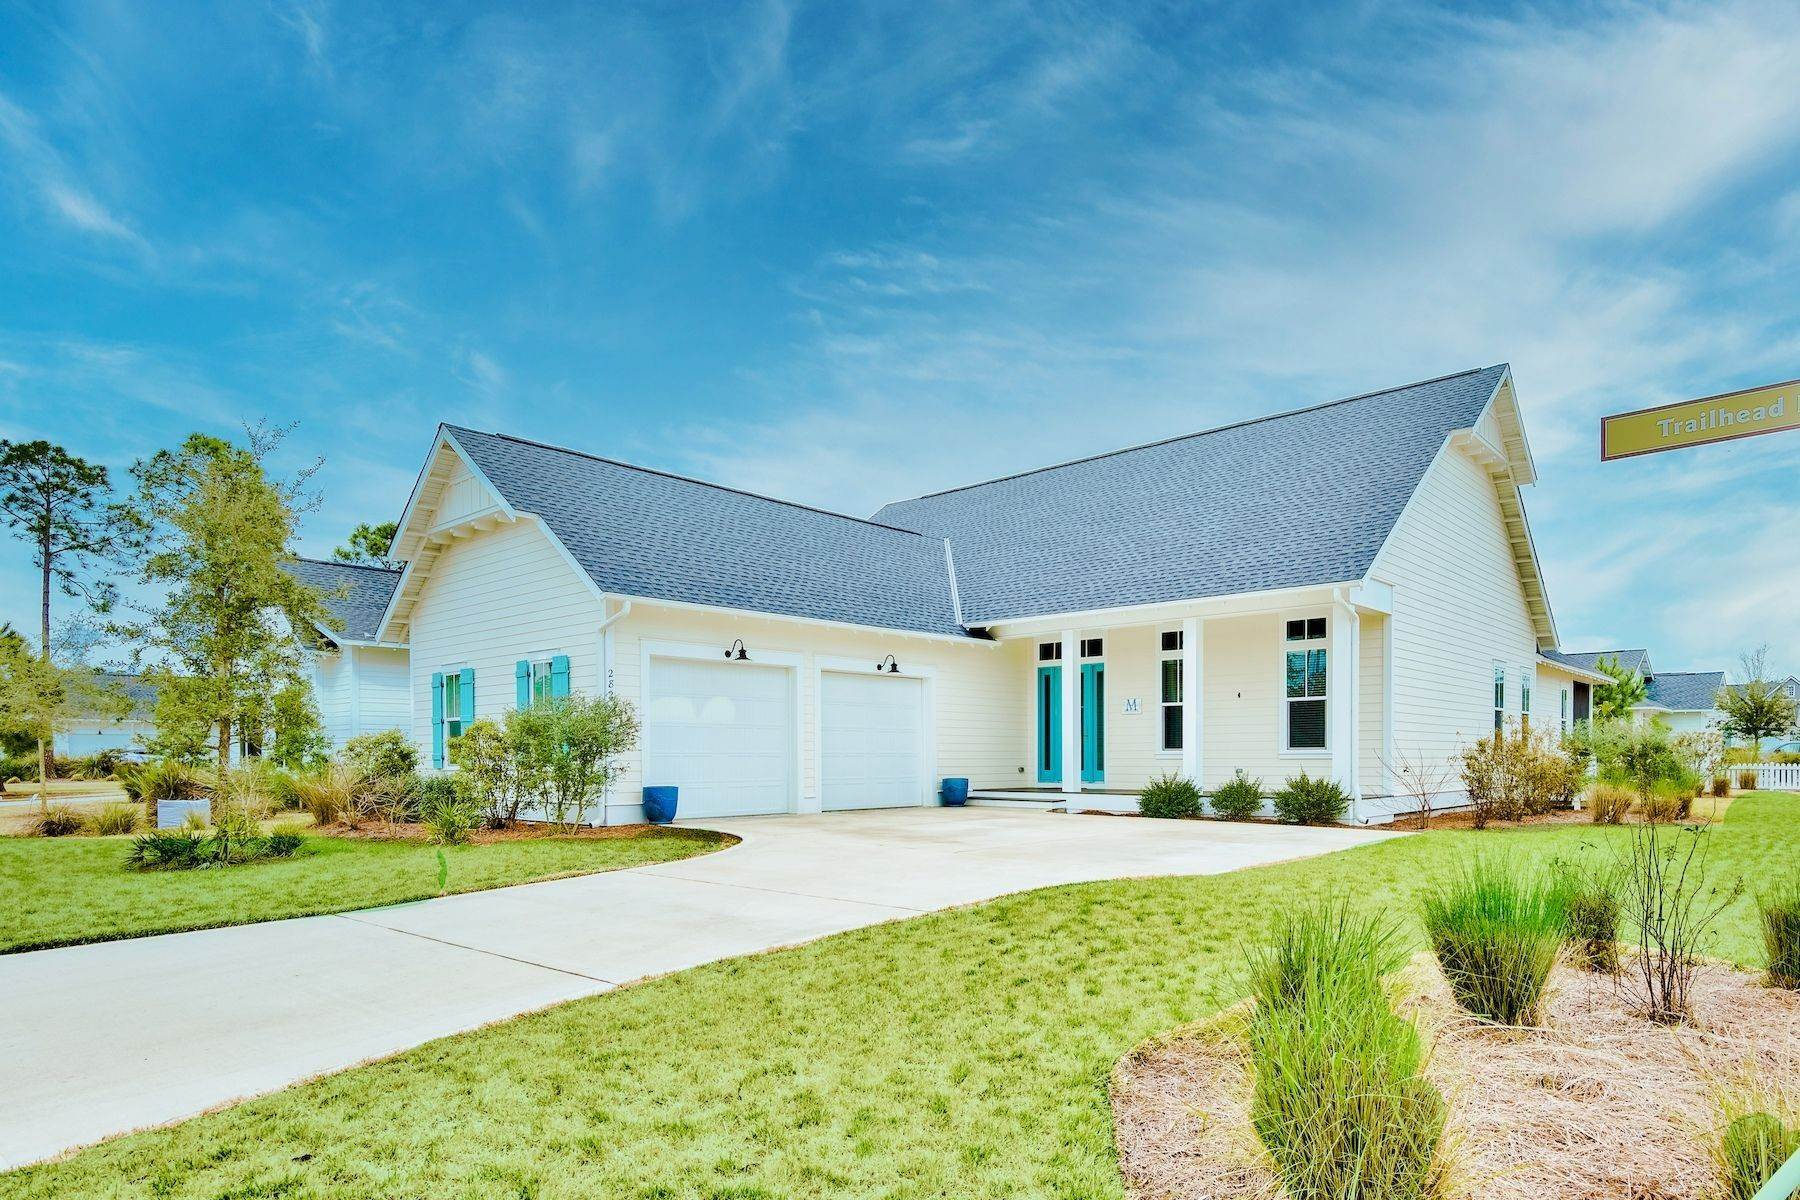 Single Family Homes for Sale at Custom Built Home on Corner Lot in Watersound Origins 282 Trailhead Drive Inlet Beach, Florida 32461 United States